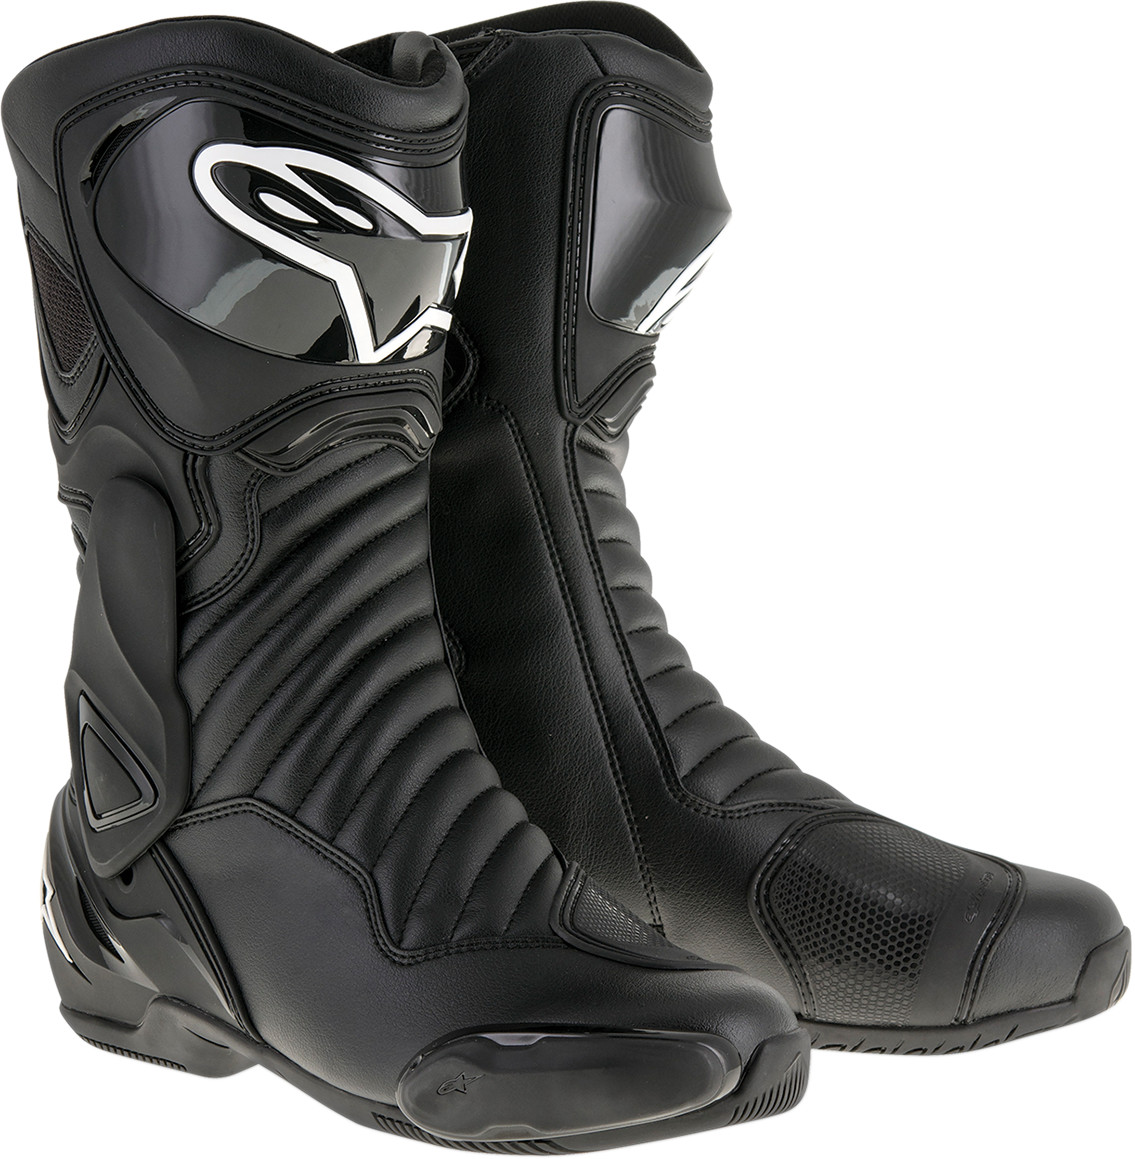 alpinestars smx 6 v2 street riding motorcycle boots all. Black Bedroom Furniture Sets. Home Design Ideas